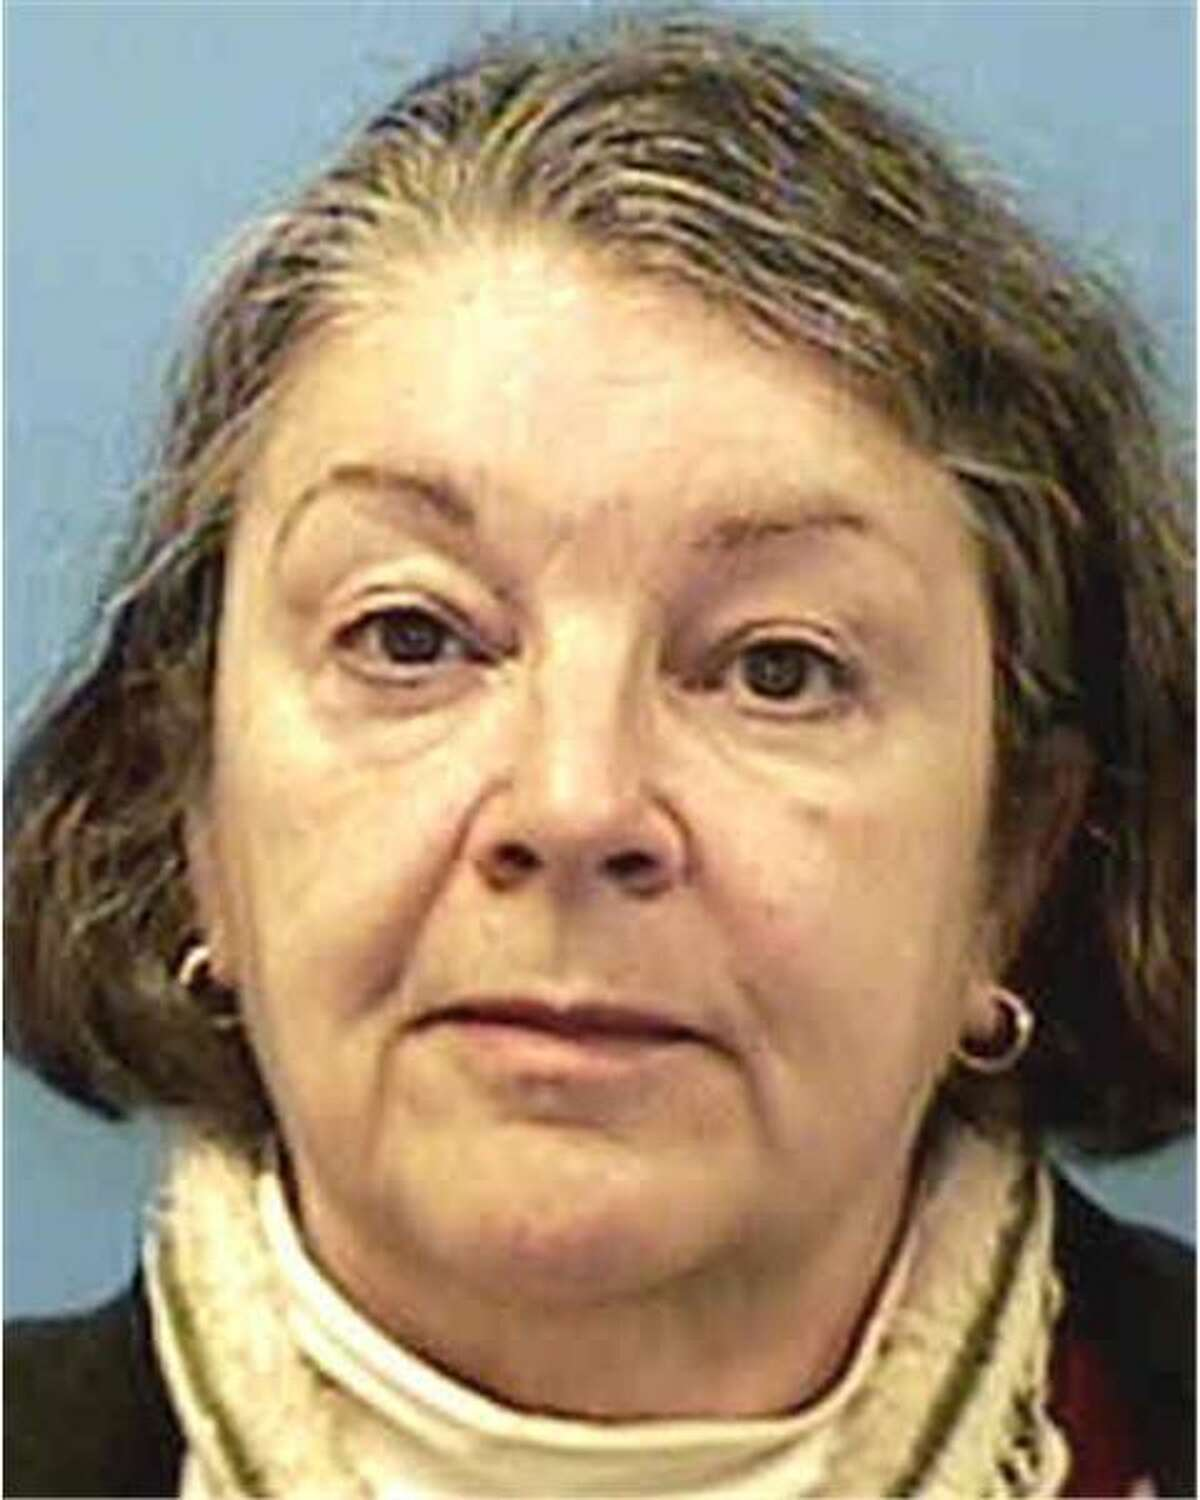 Josiane Maloney, 63, of Clinton, has been missing since Monday and police are asking for the public's help in locating her.